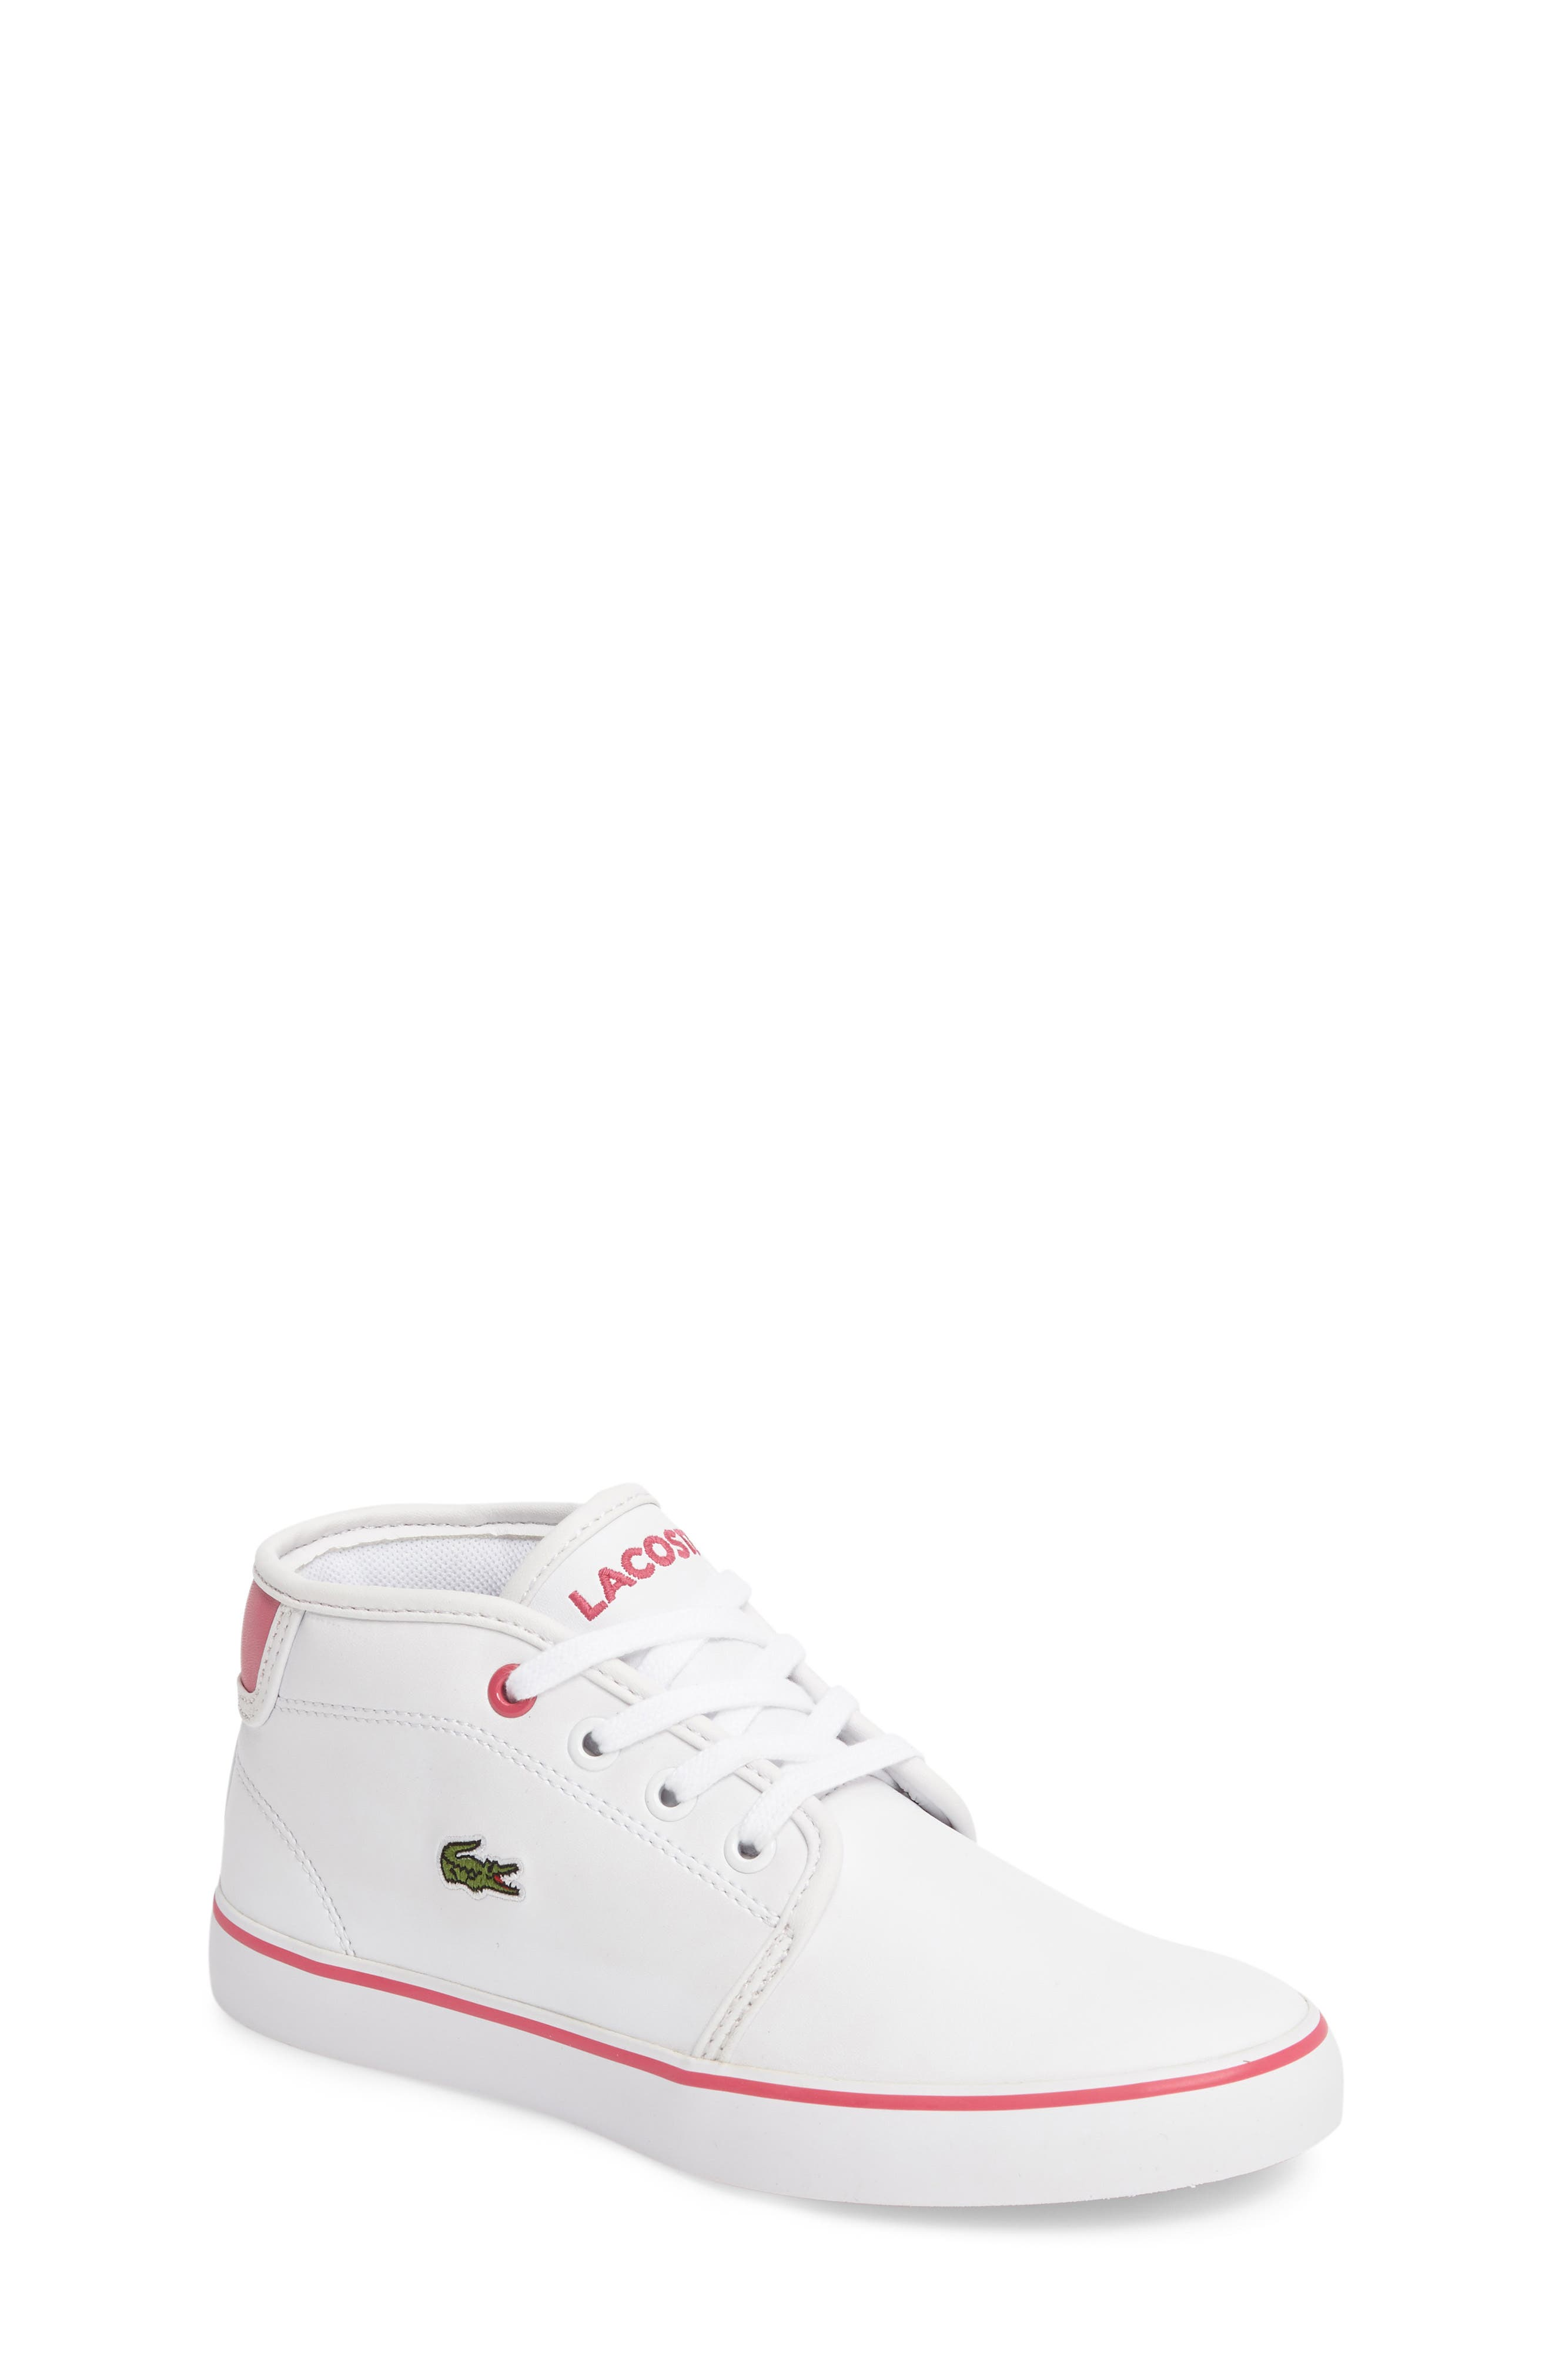 Main Image - Lacoste Ampthill Mid-Top Sneaker (Baby, Walker, Toddler & Little Kid)